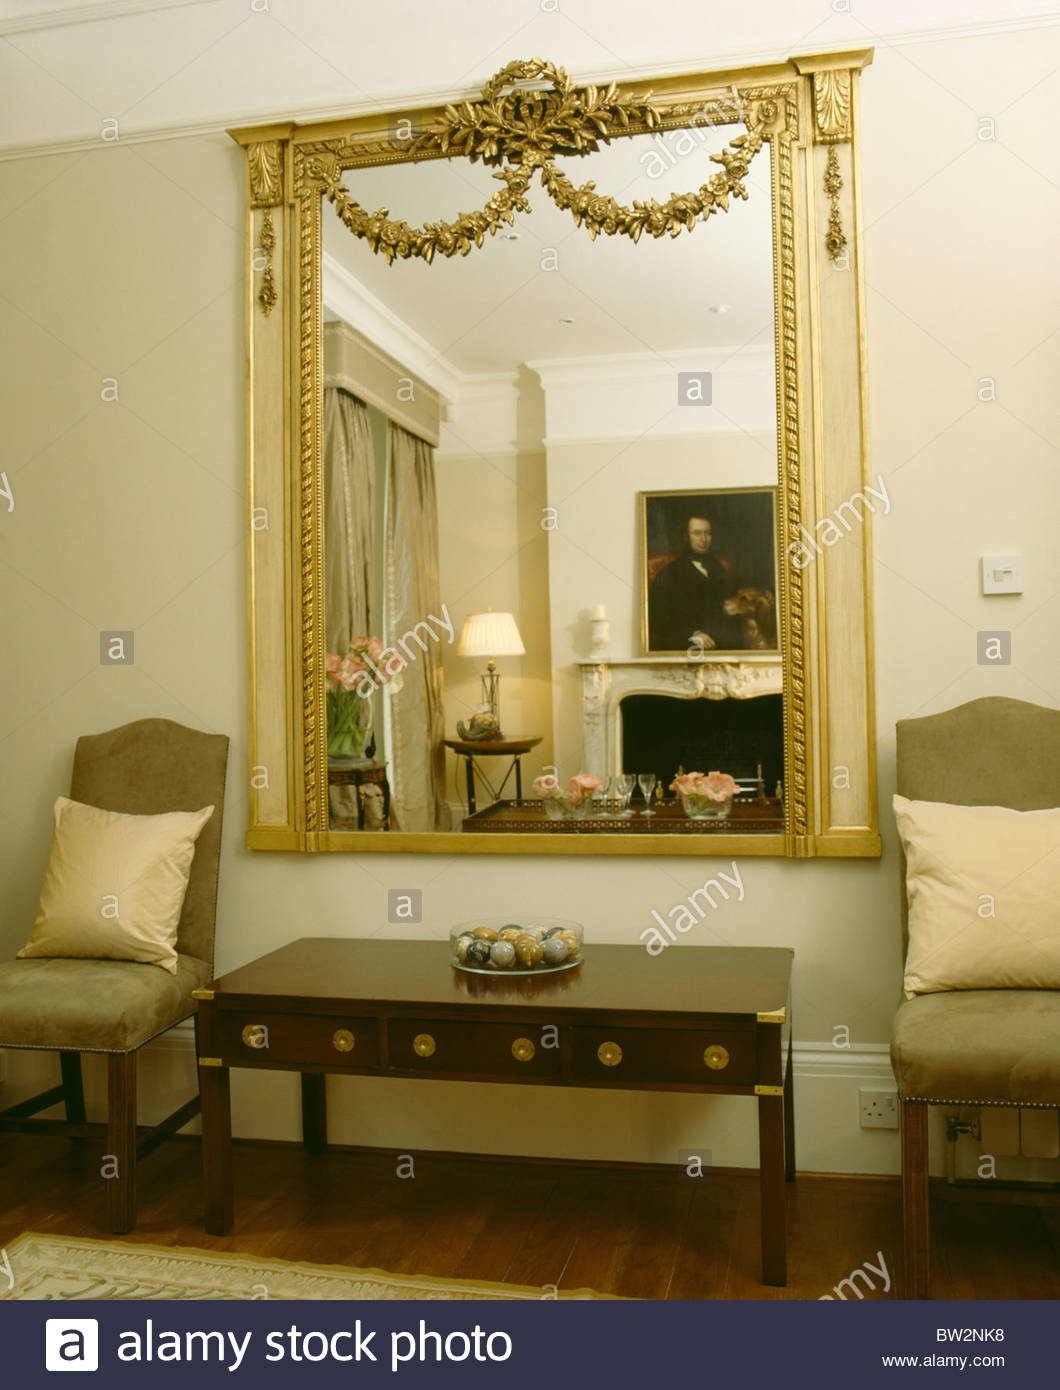 Large Ornate Gilt Antique Mirror On Wall Above Console Table In Inside Ornate Gilt Mirrors (Image 11 of 15)